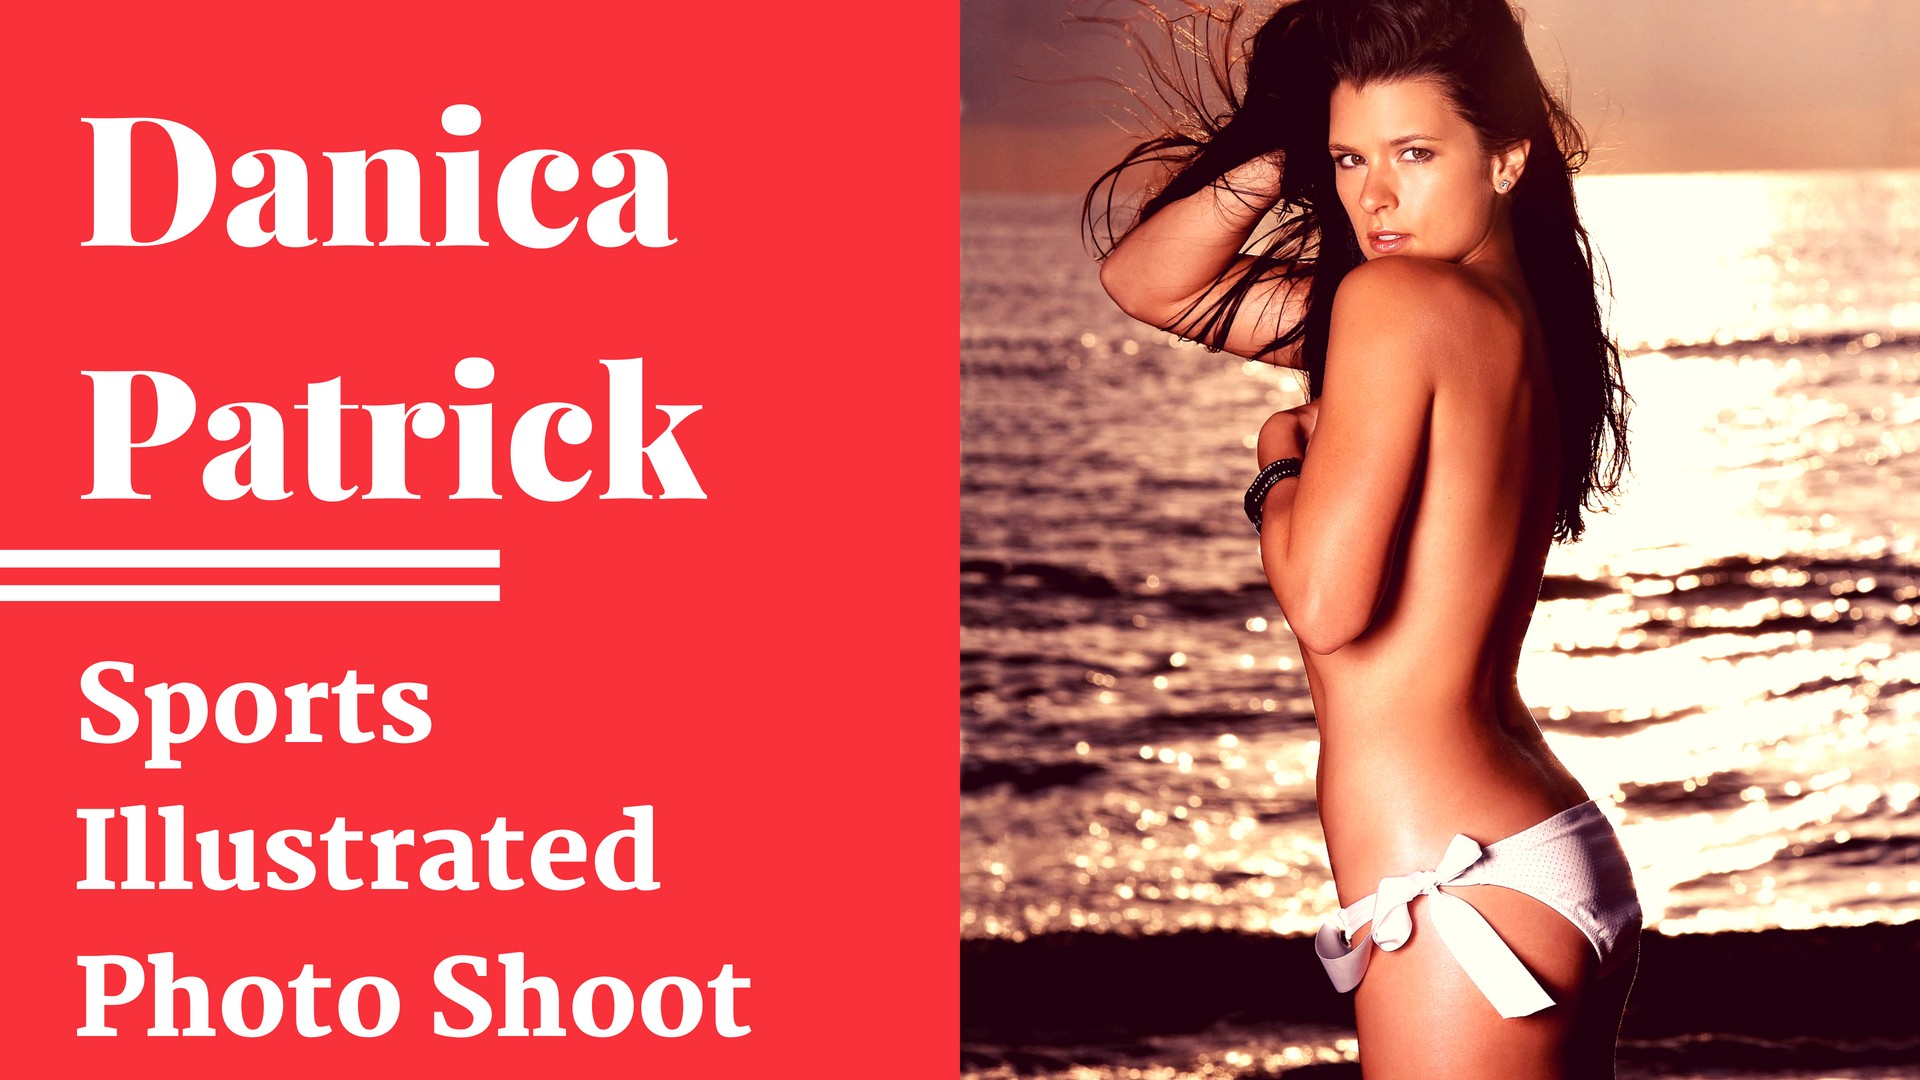 Danica Patrick -  Sexy Sports Illustrtated Photo Shoot - Sexy Actress Pictures | Hot Actress Pictures - ActressSnaps.com